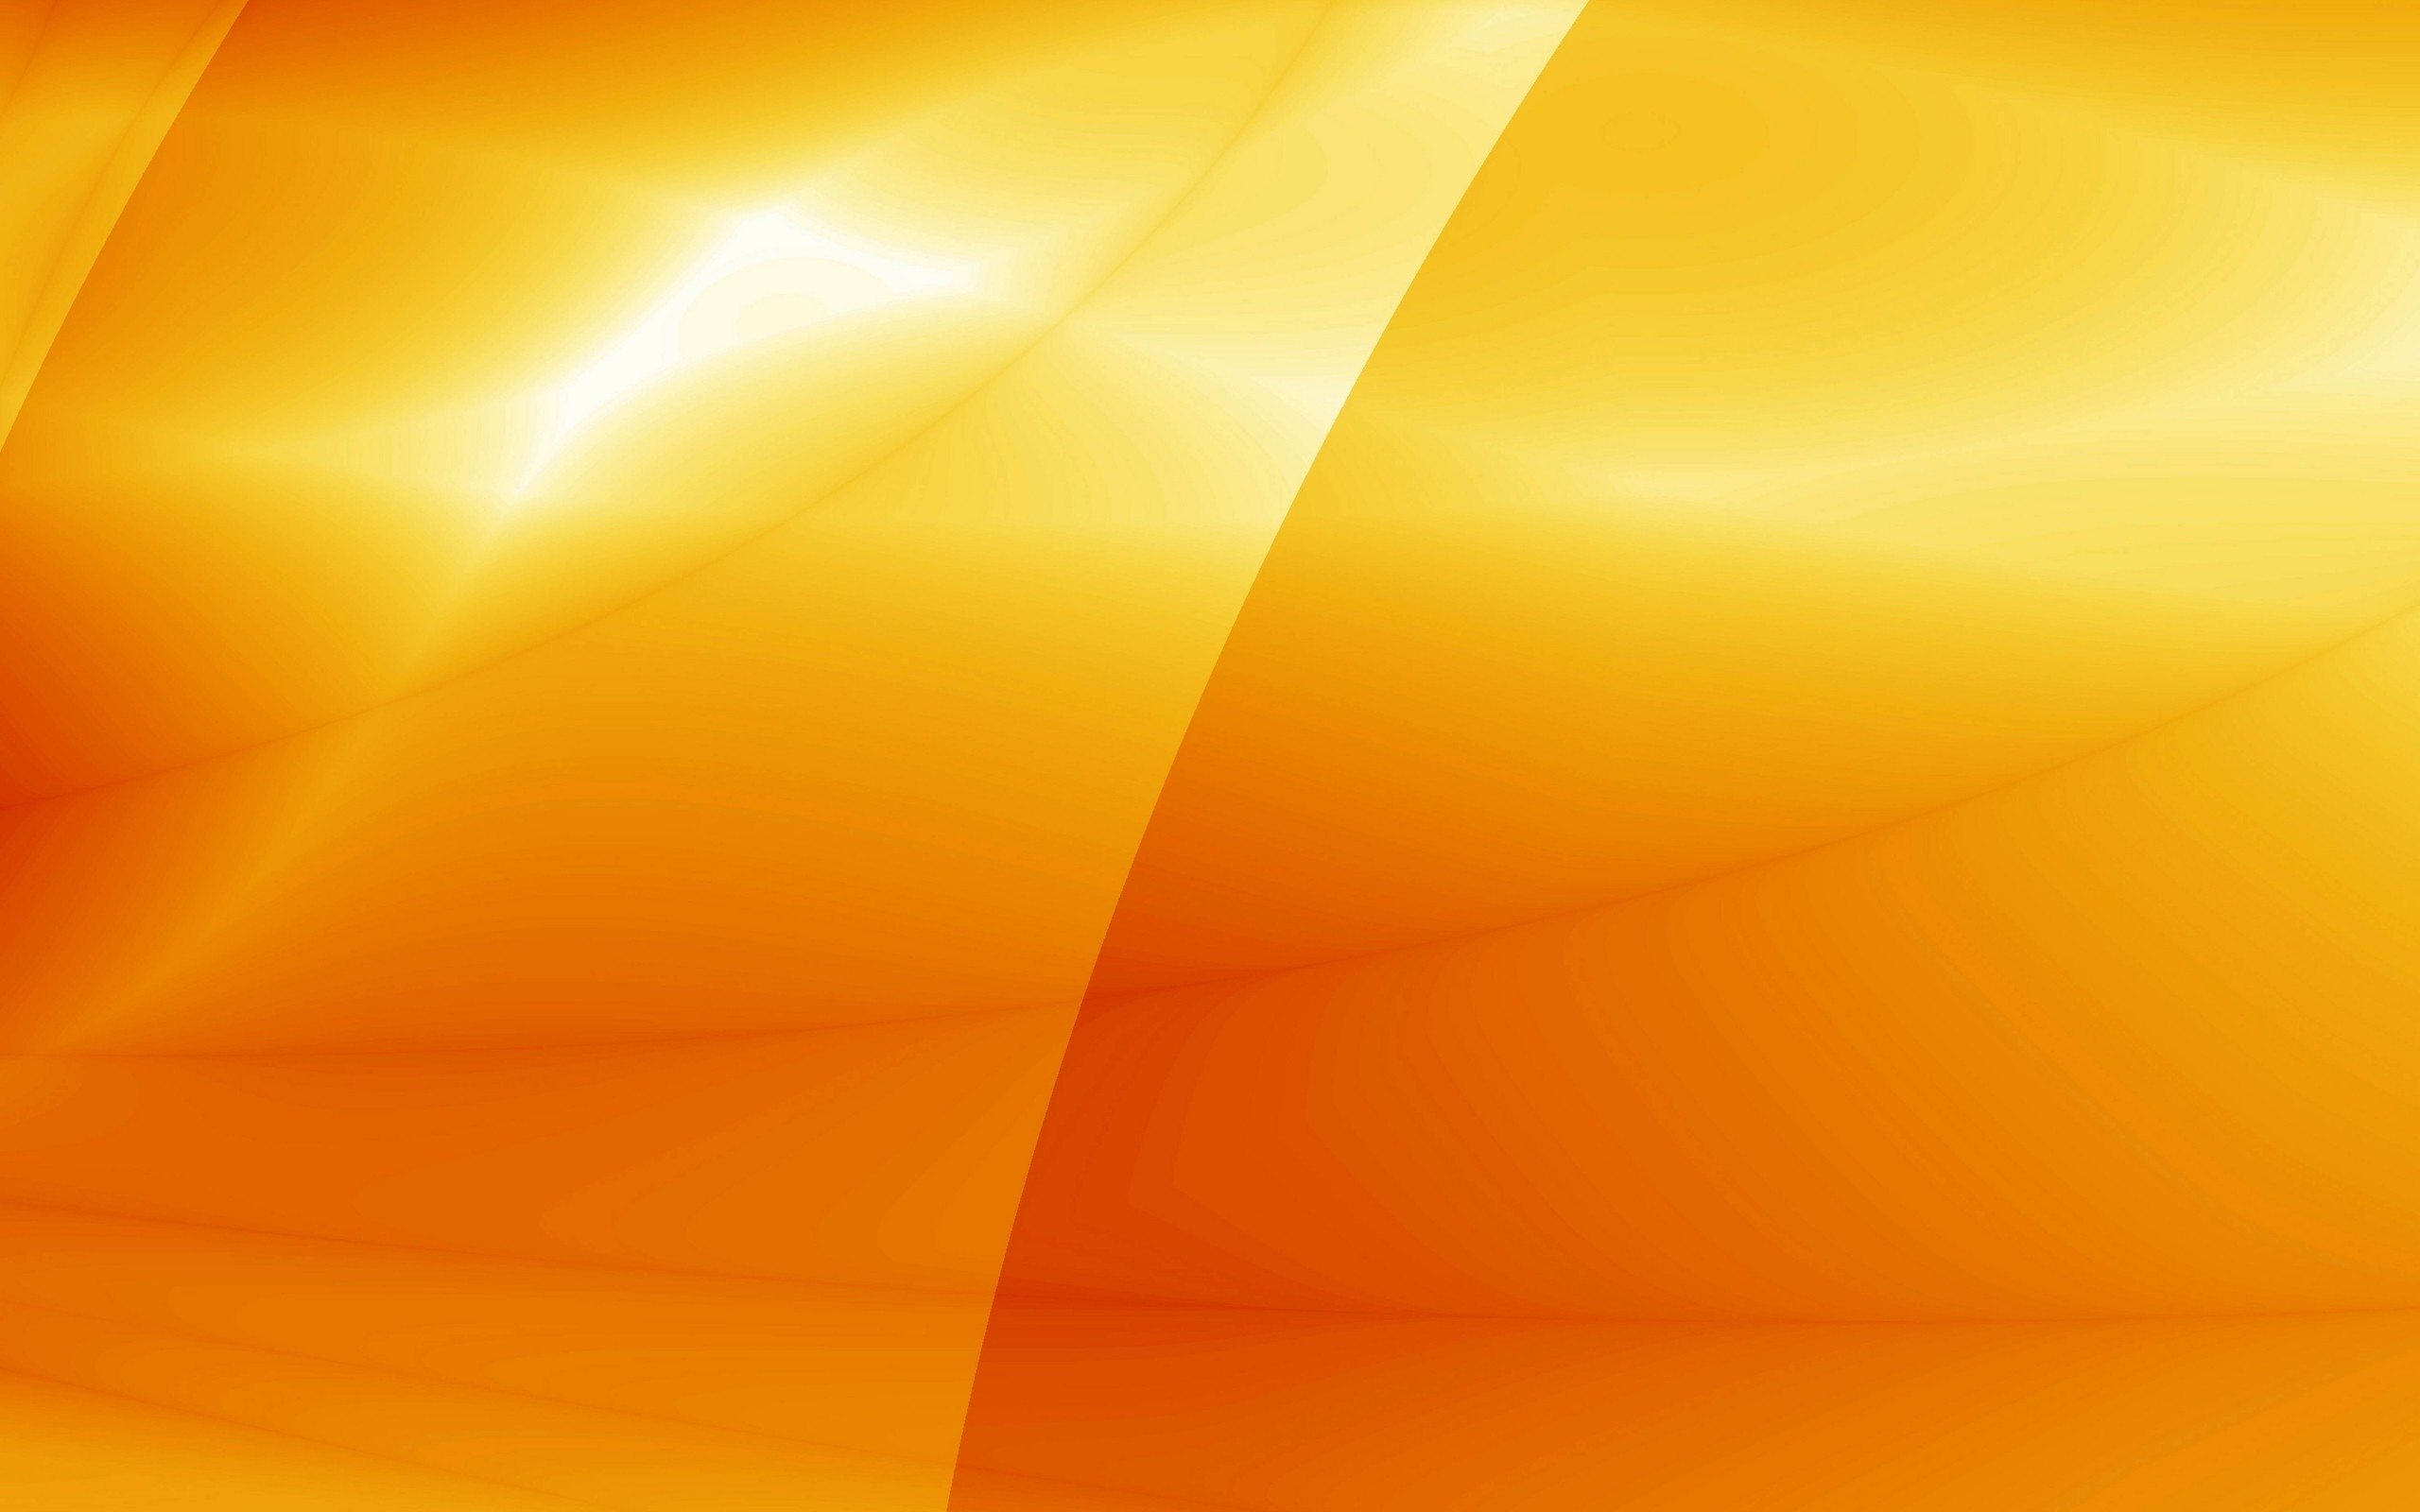 uhd yellow wallpaper backgrounds ios android